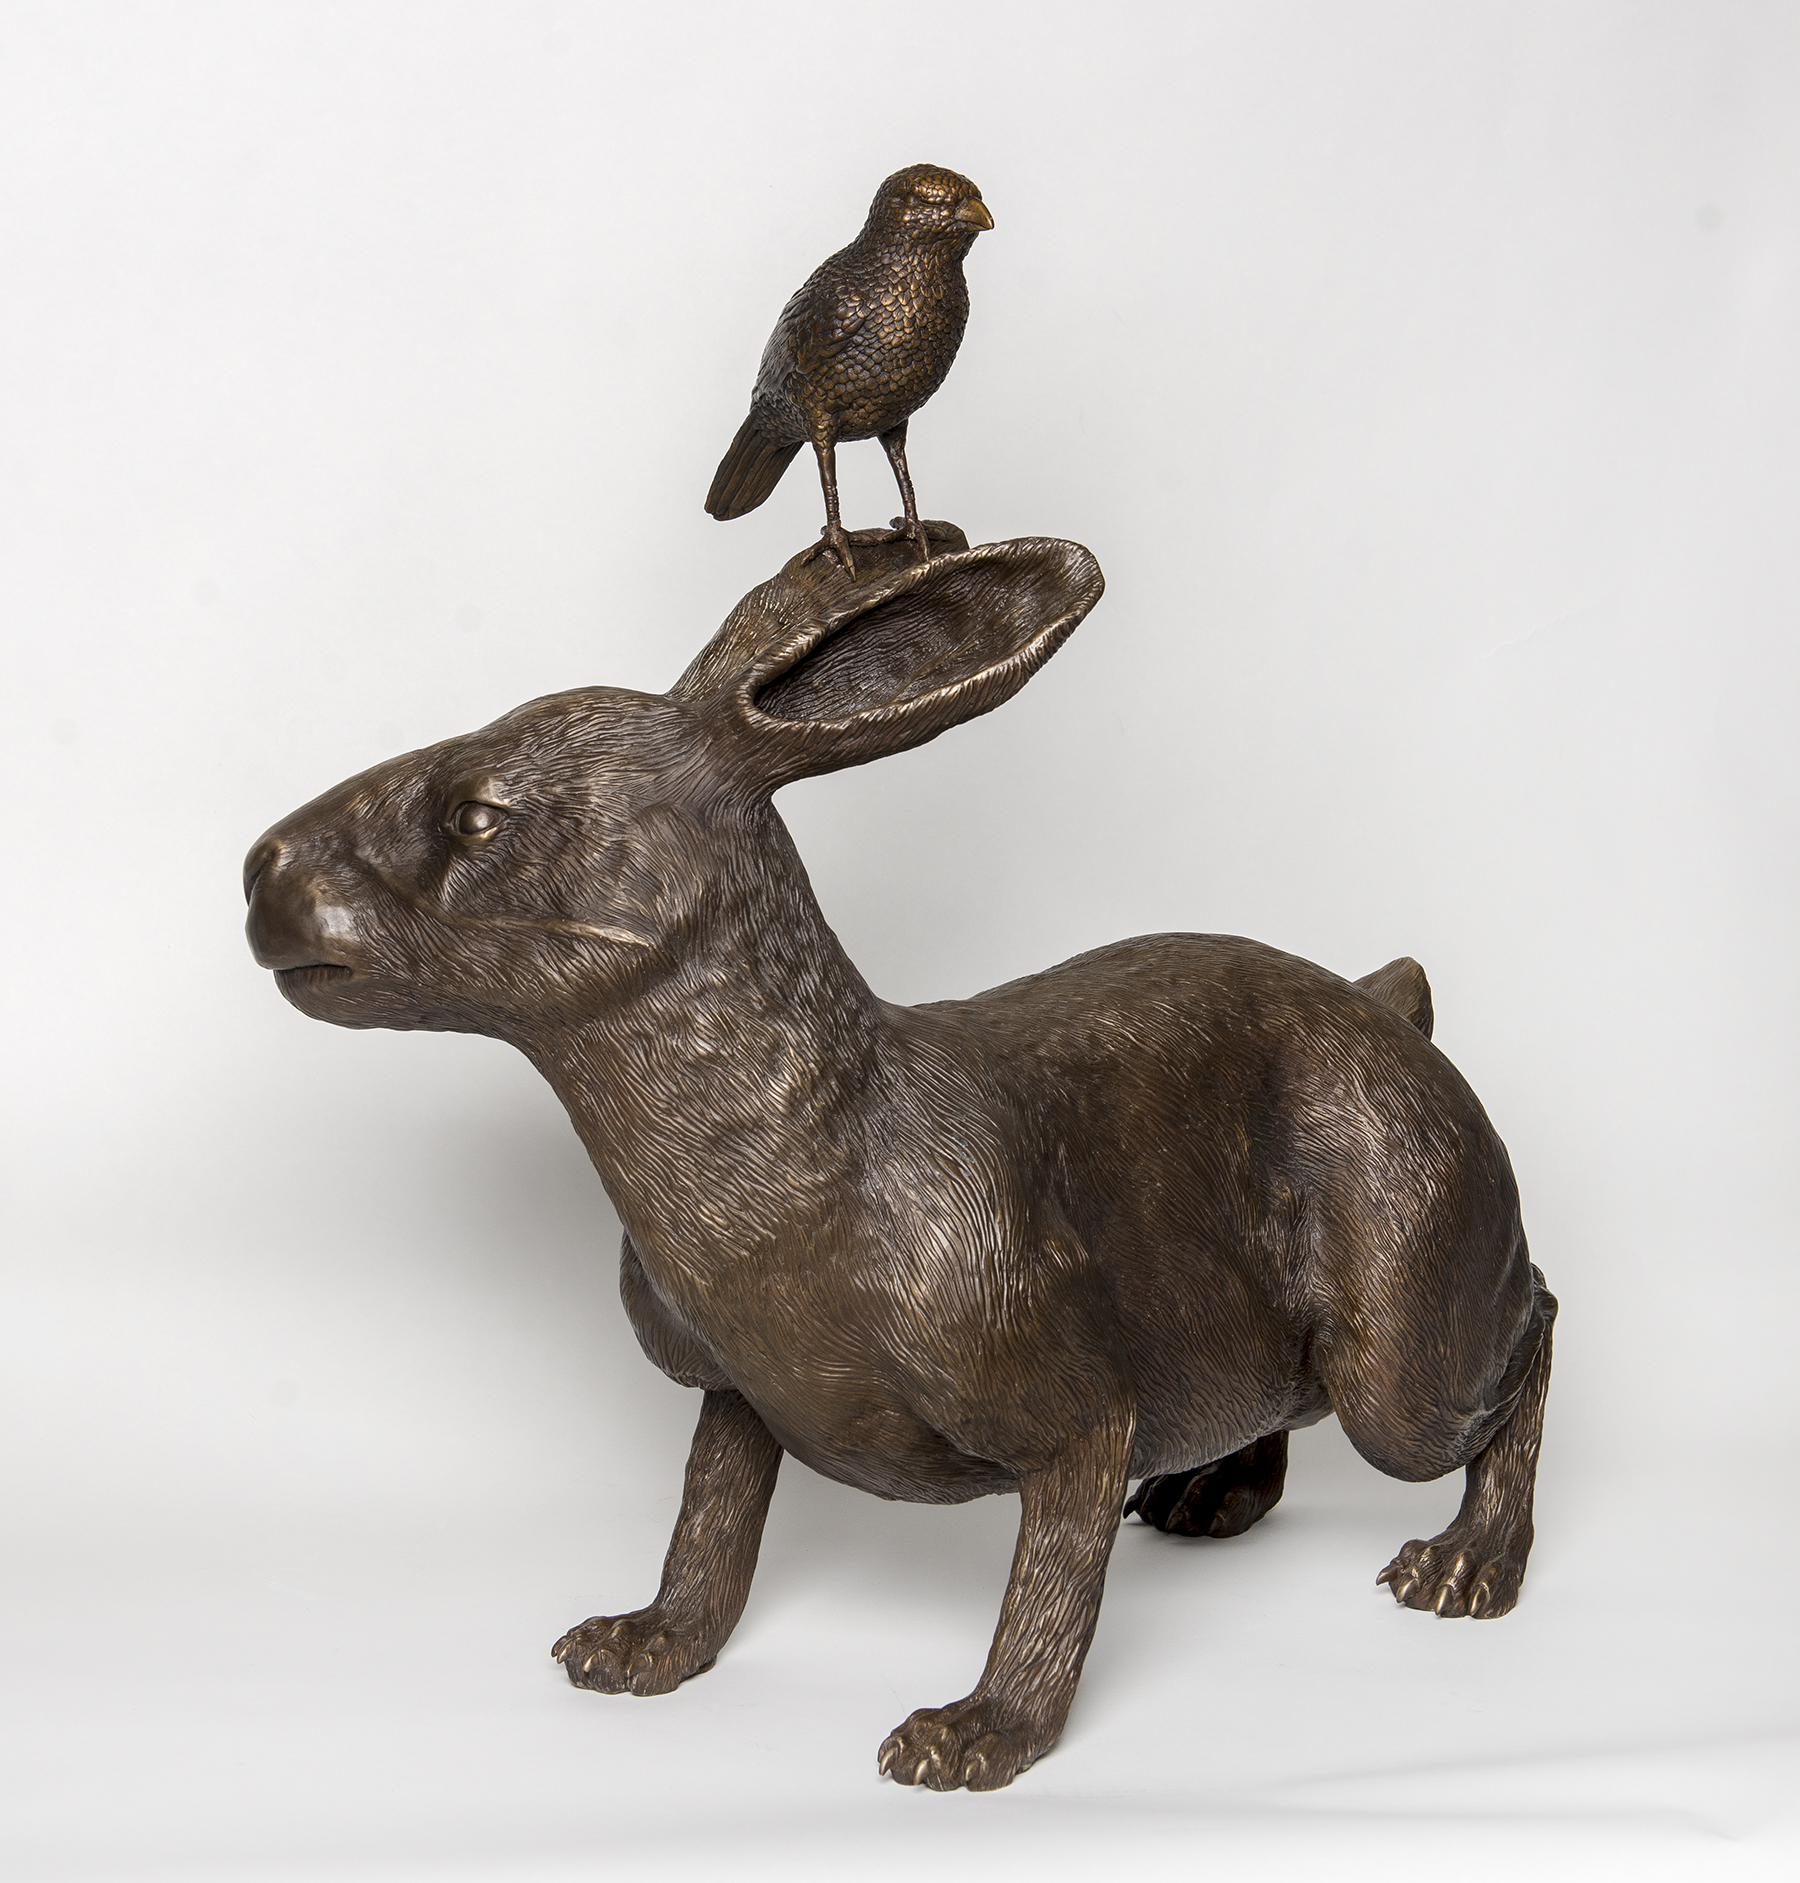 Profile of rabbit sculpture with a bird on its head.